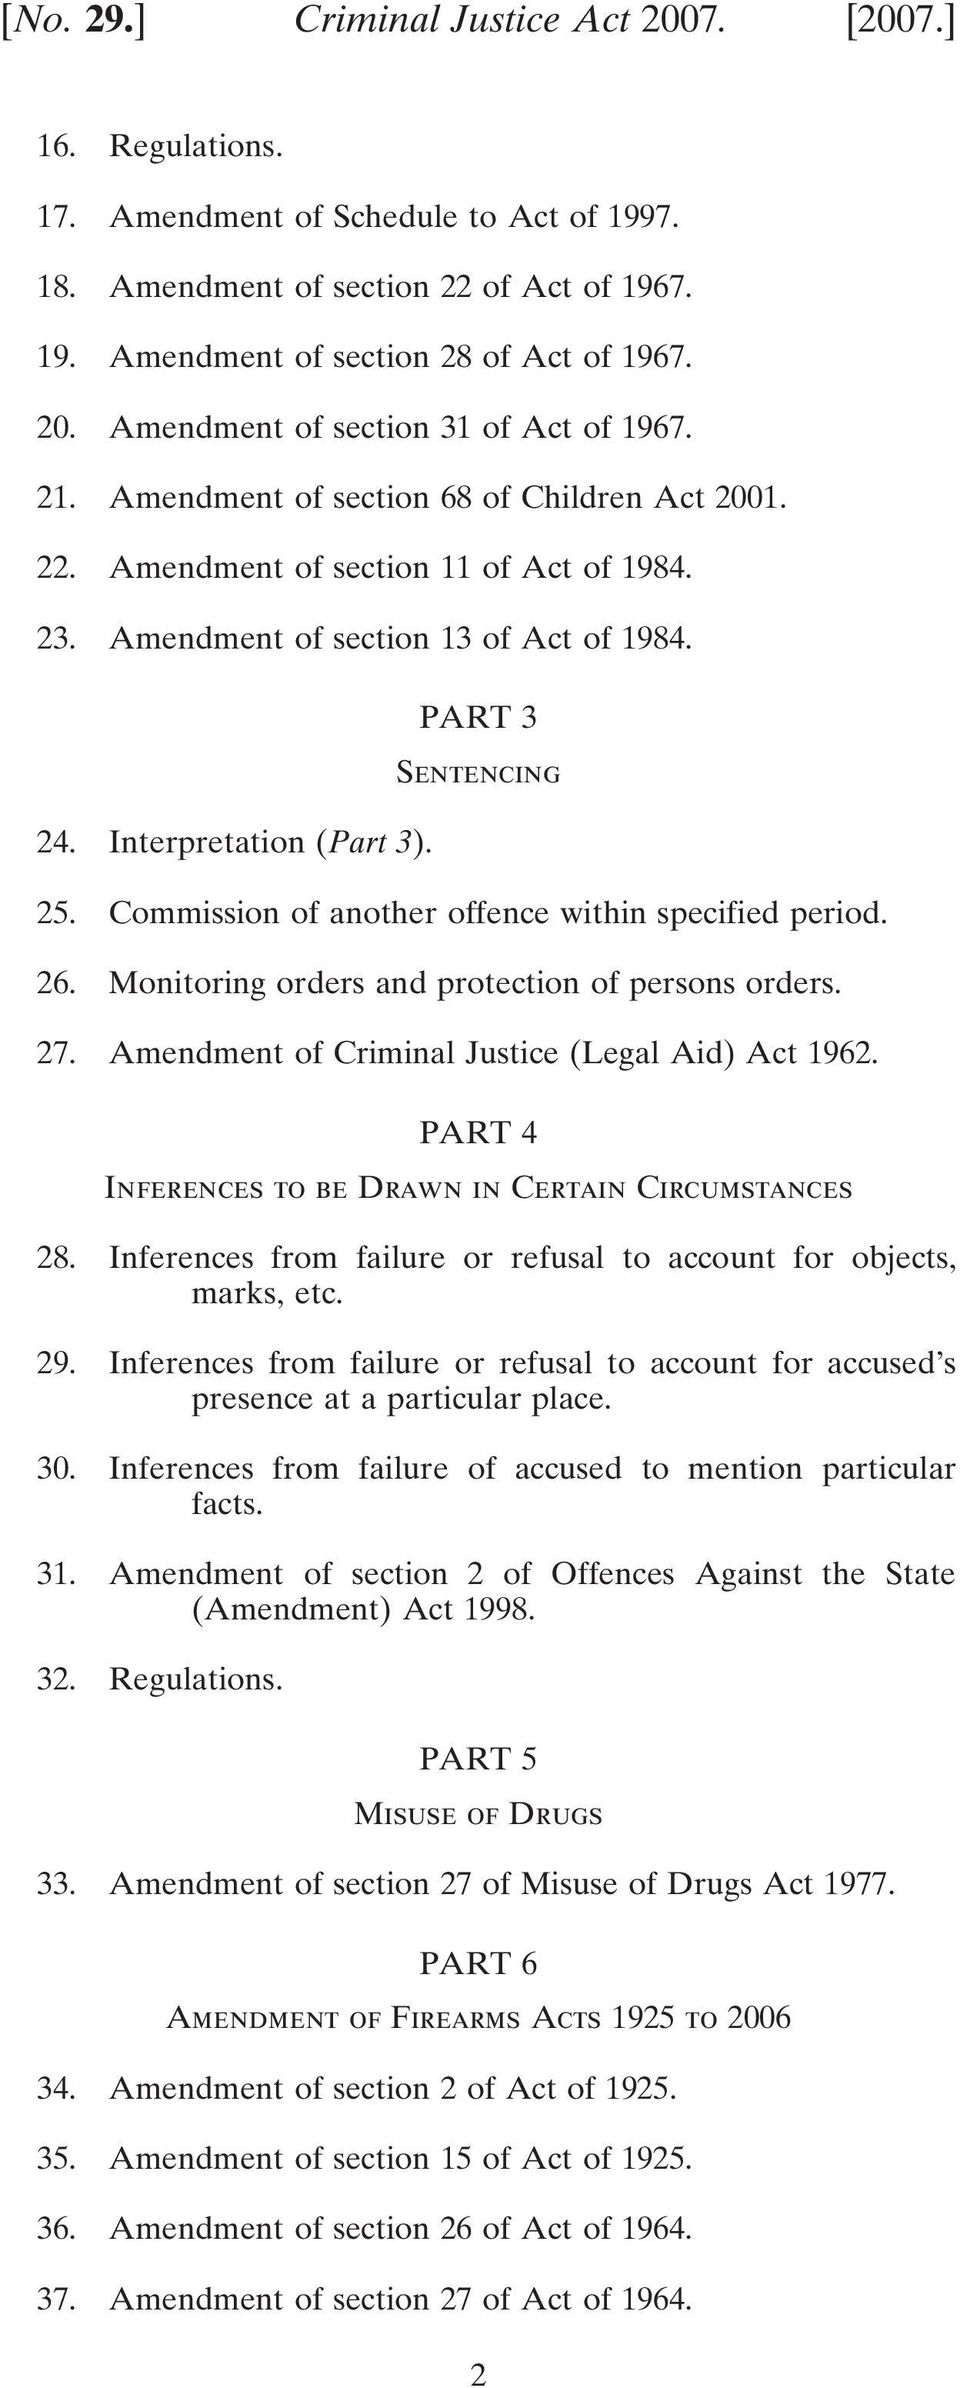 Commission of another offence within specified period. 26. Monitoring orders and protection of persons orders. 27. Amendment of Criminal Justice (Legal Aid) Act 1962.